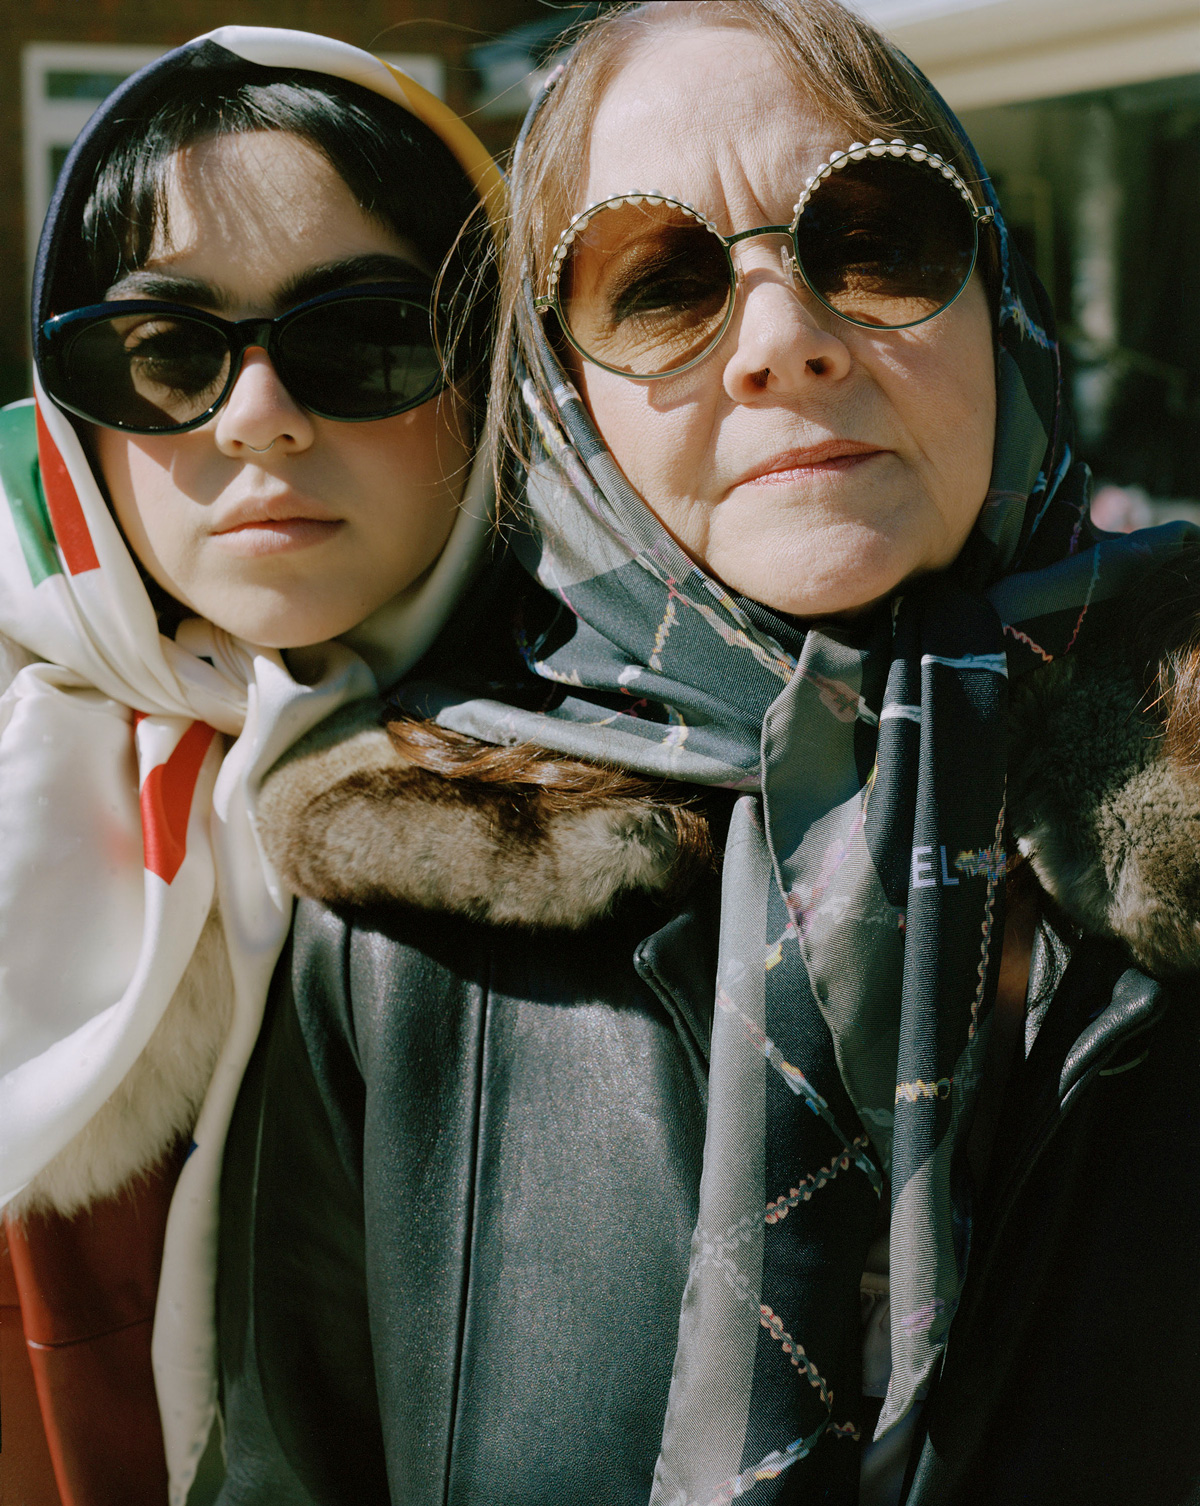 Mother and daughter side by side outdoors wearing vintage-looking sunglasses, silken headscarves, and fur-collared coats